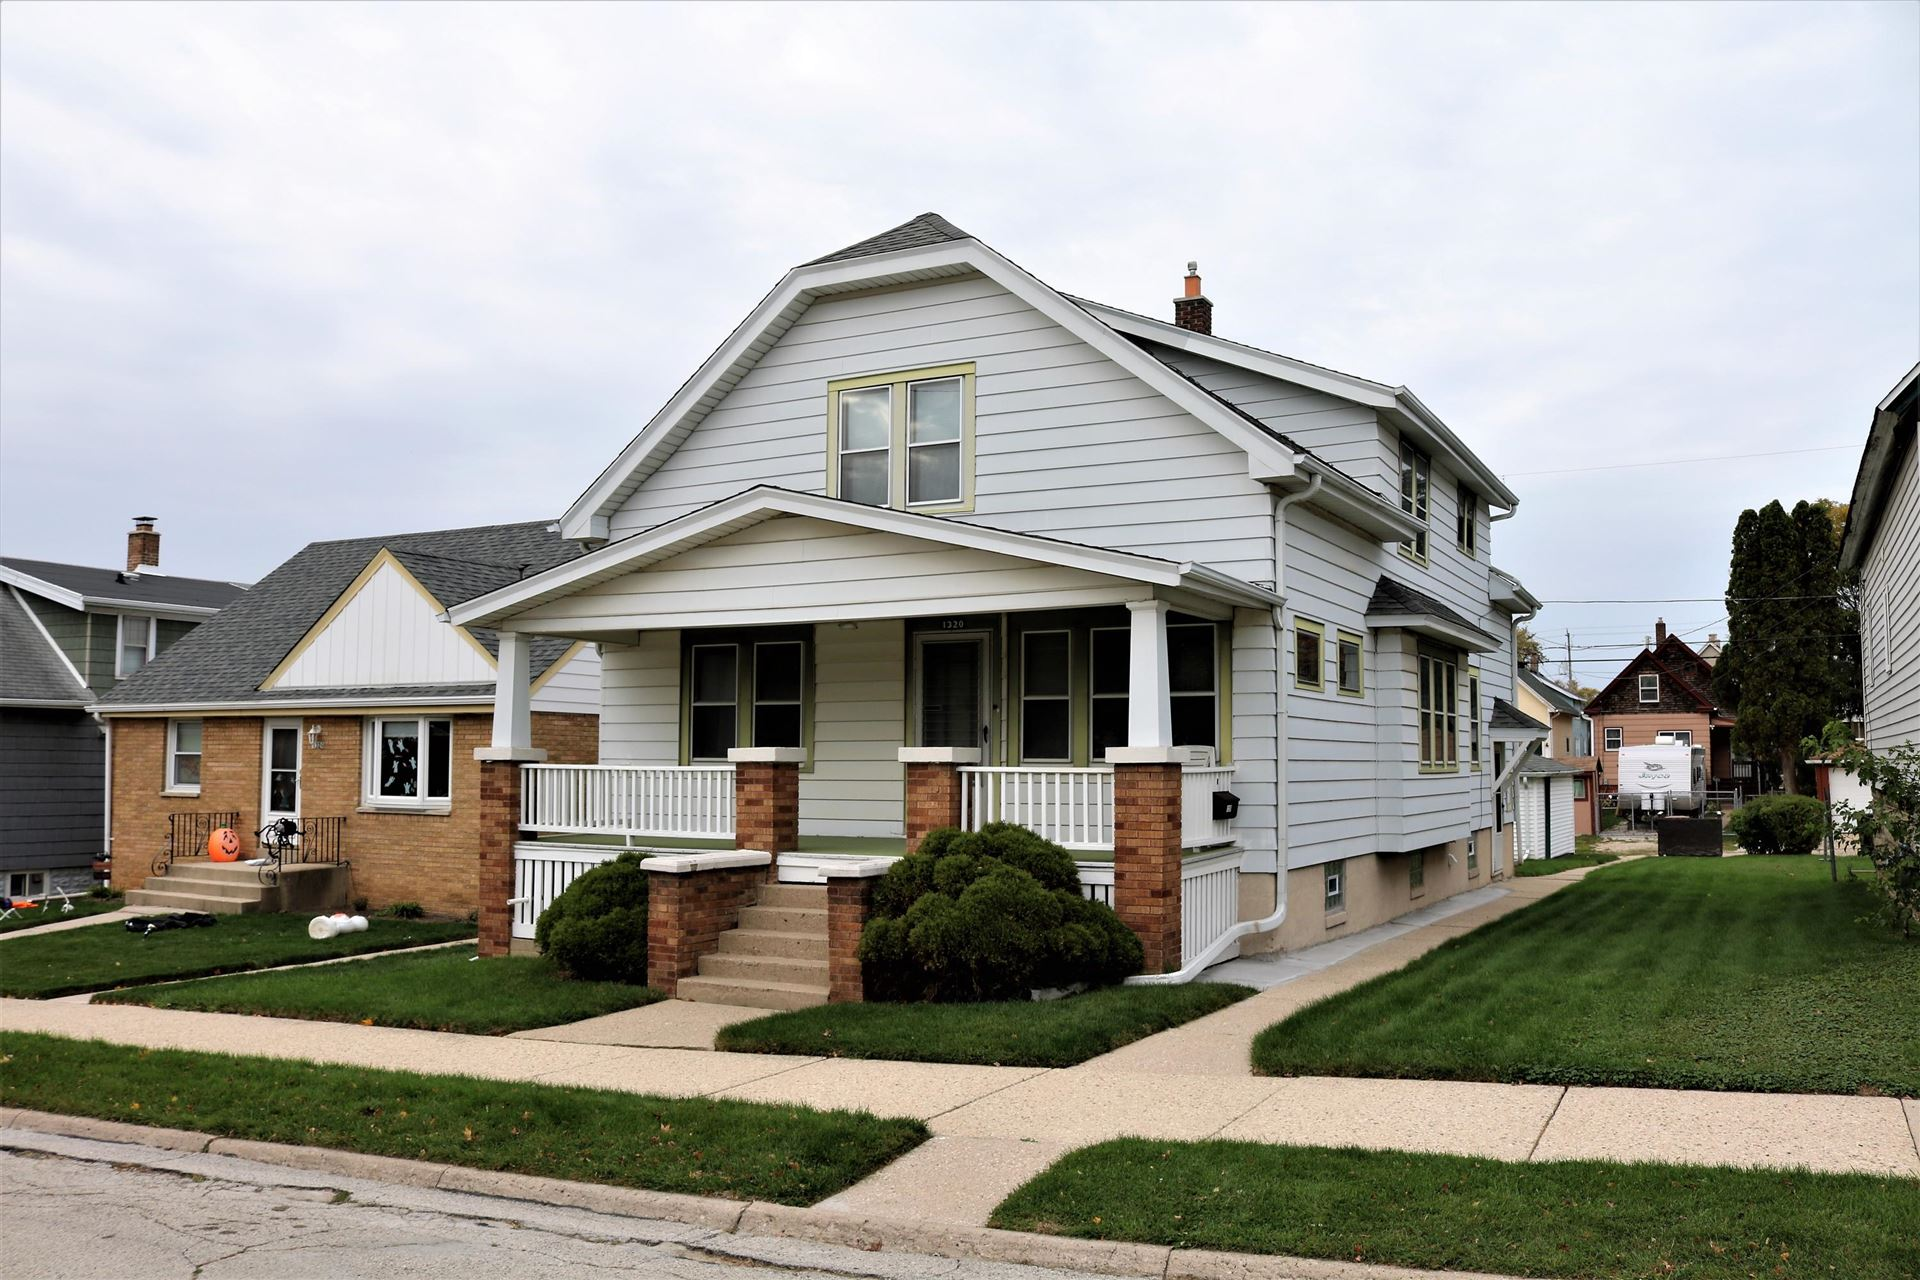 1320 Michigan Ave, South Milwaukee, WI 53172 - #: 1715104